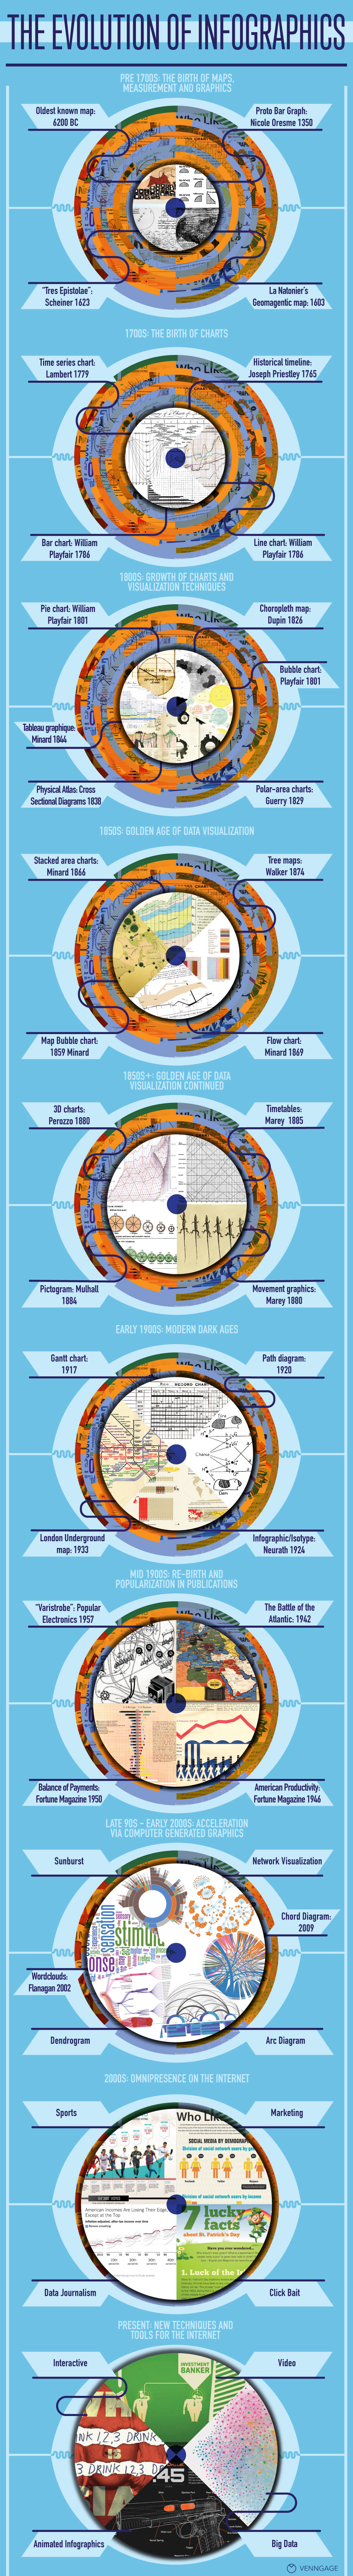 The Evolution of Infographics - Venngage